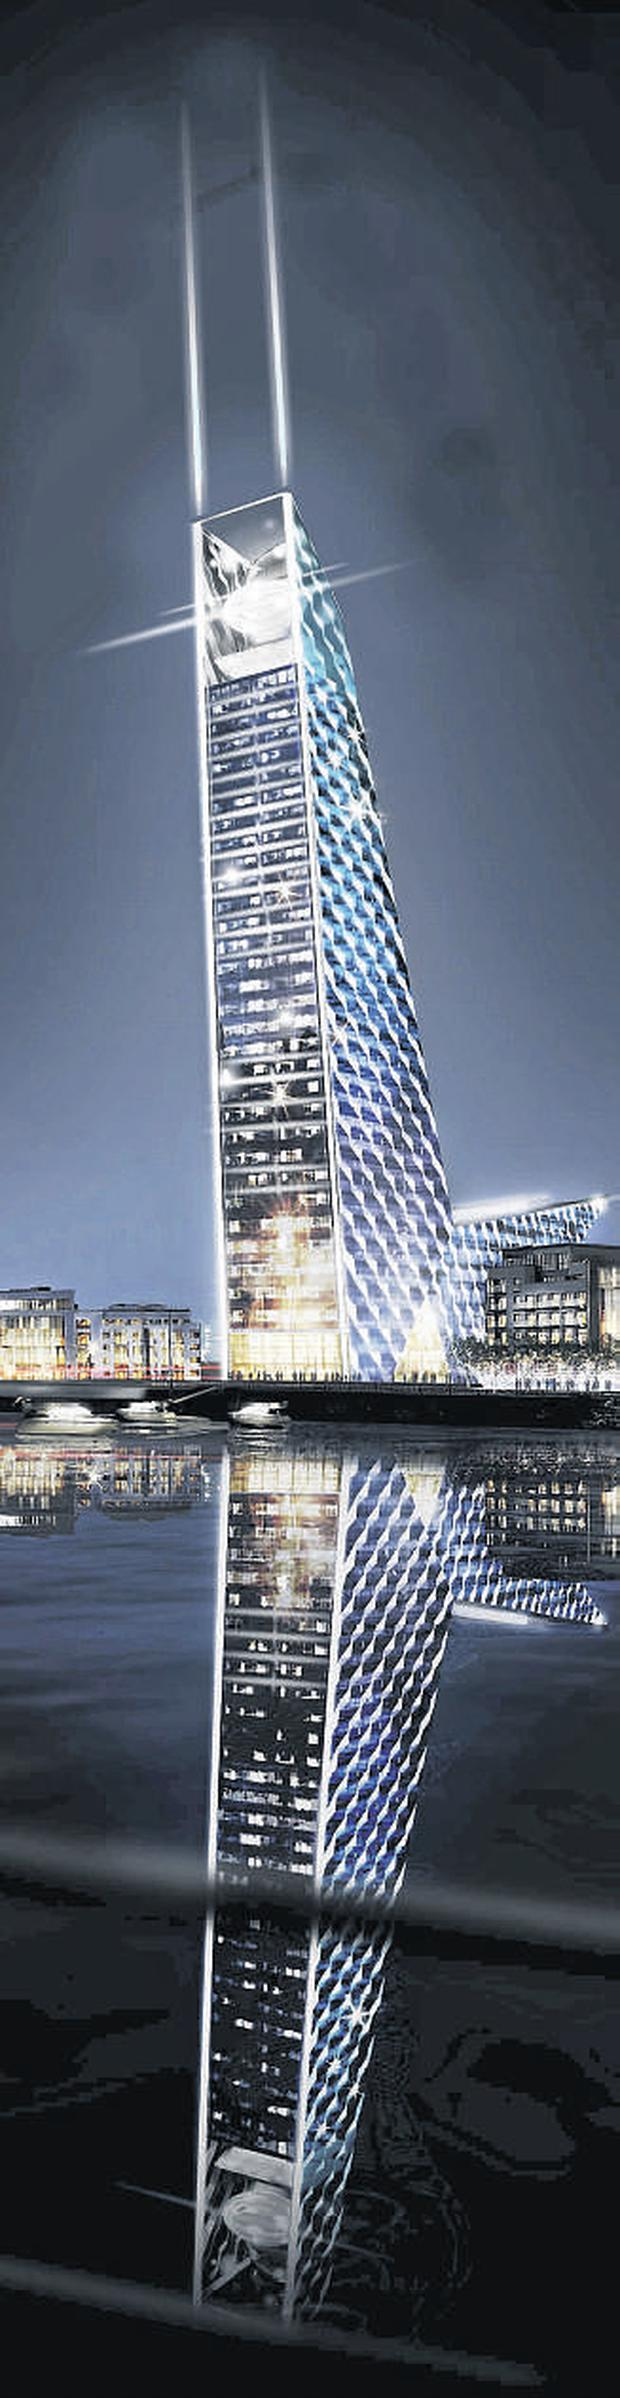 The U2 tower is one of a number of high rise buildings in the pipeline for Dublin